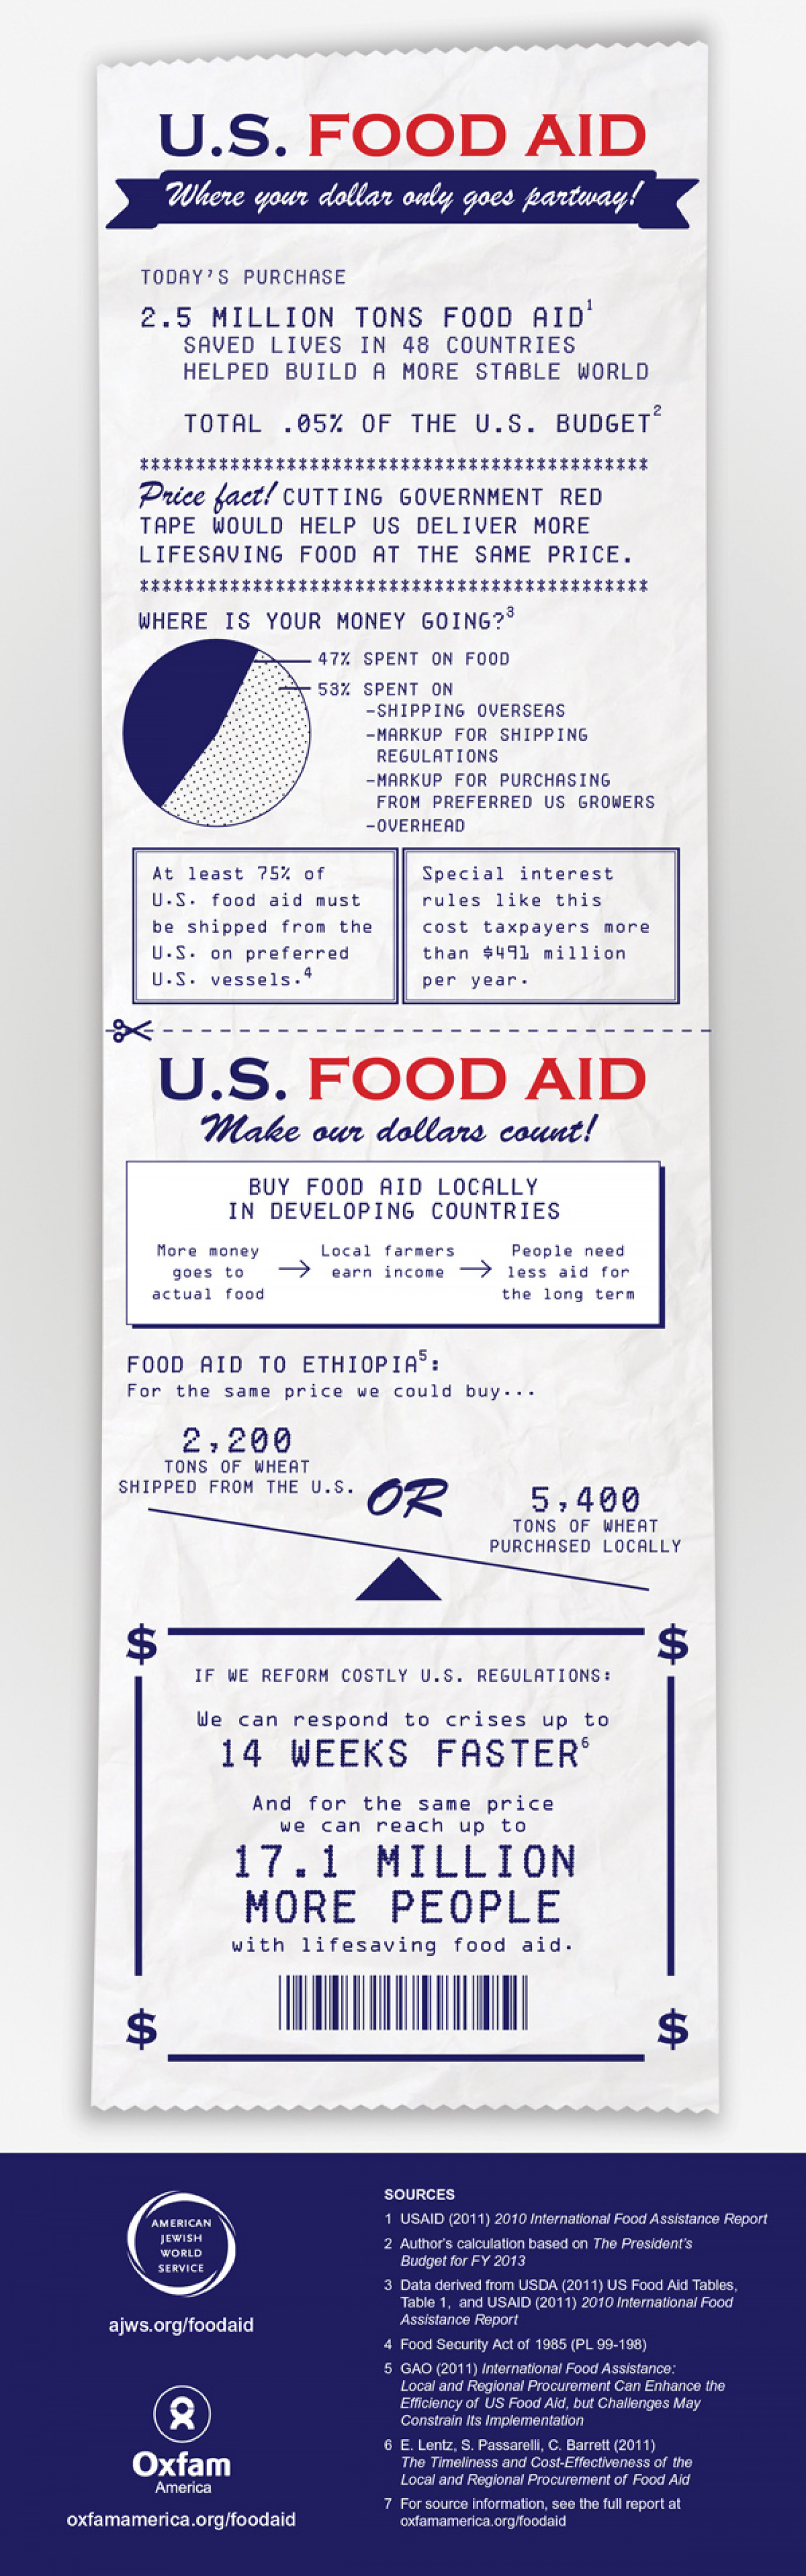 Food aid receipt Infographic